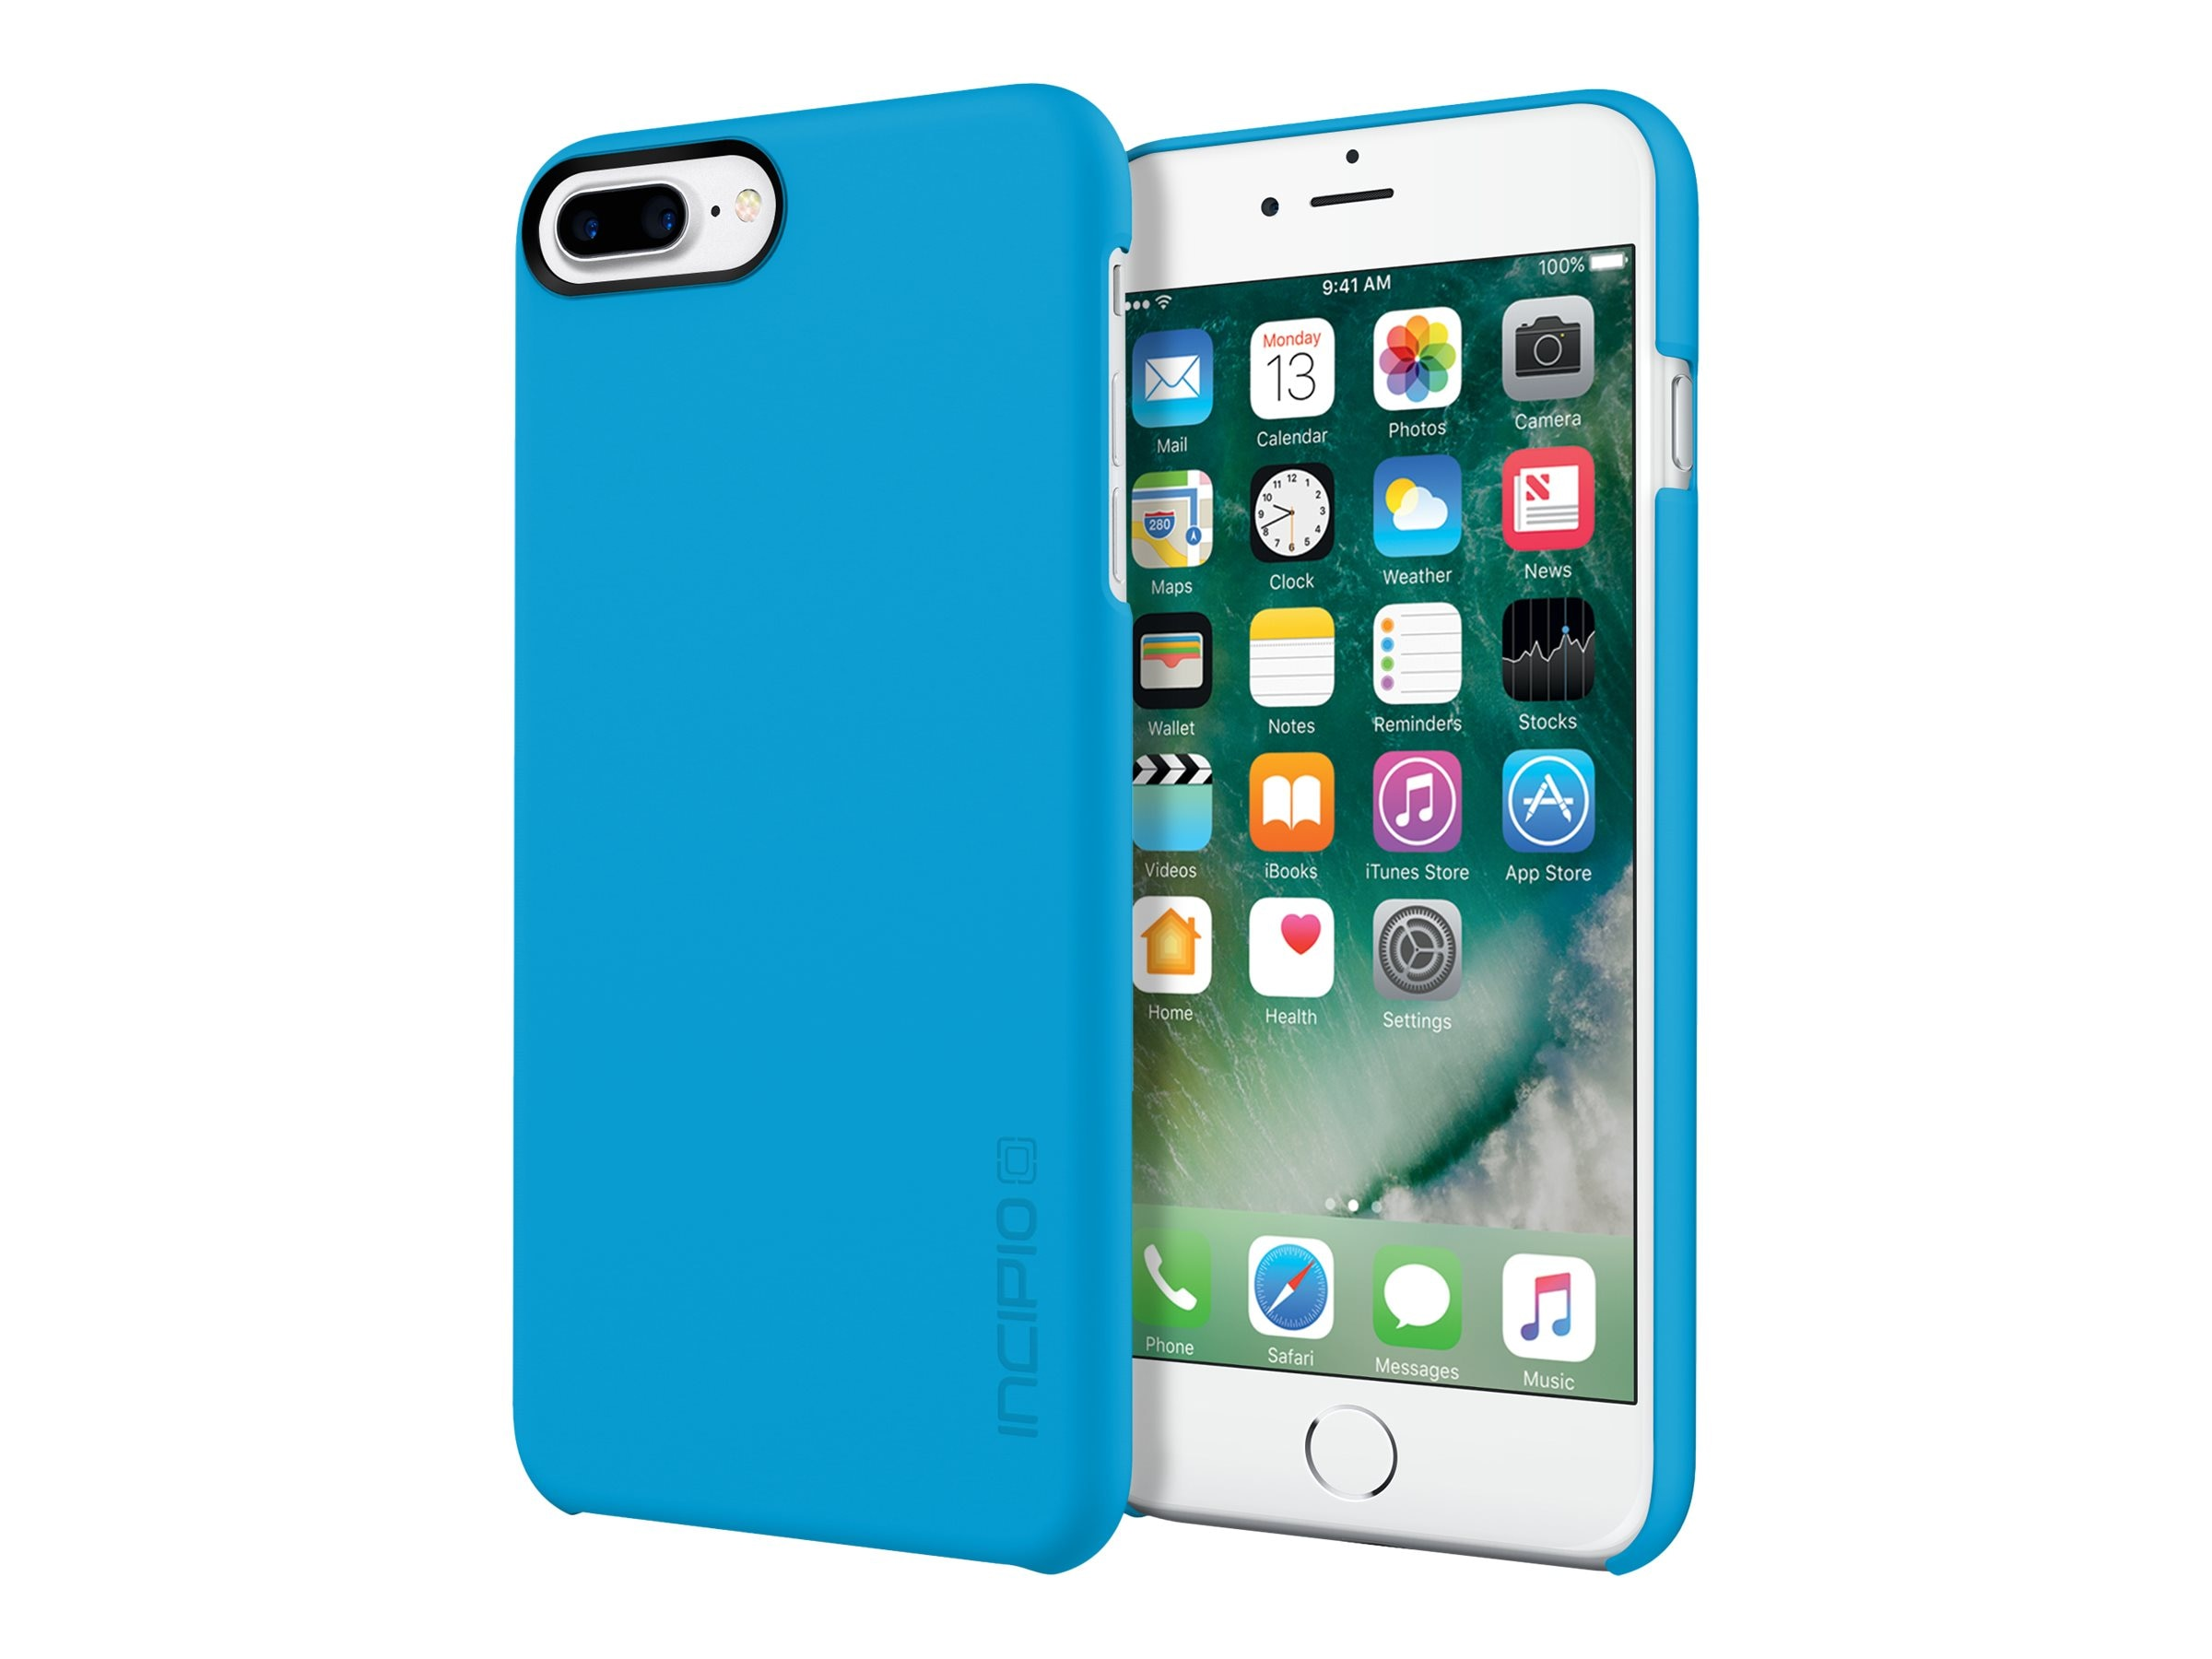 Incipio Feather Ultra Light Snap-On Case for iPhone 7 Plus, Cyan, IPH-1493-CYN